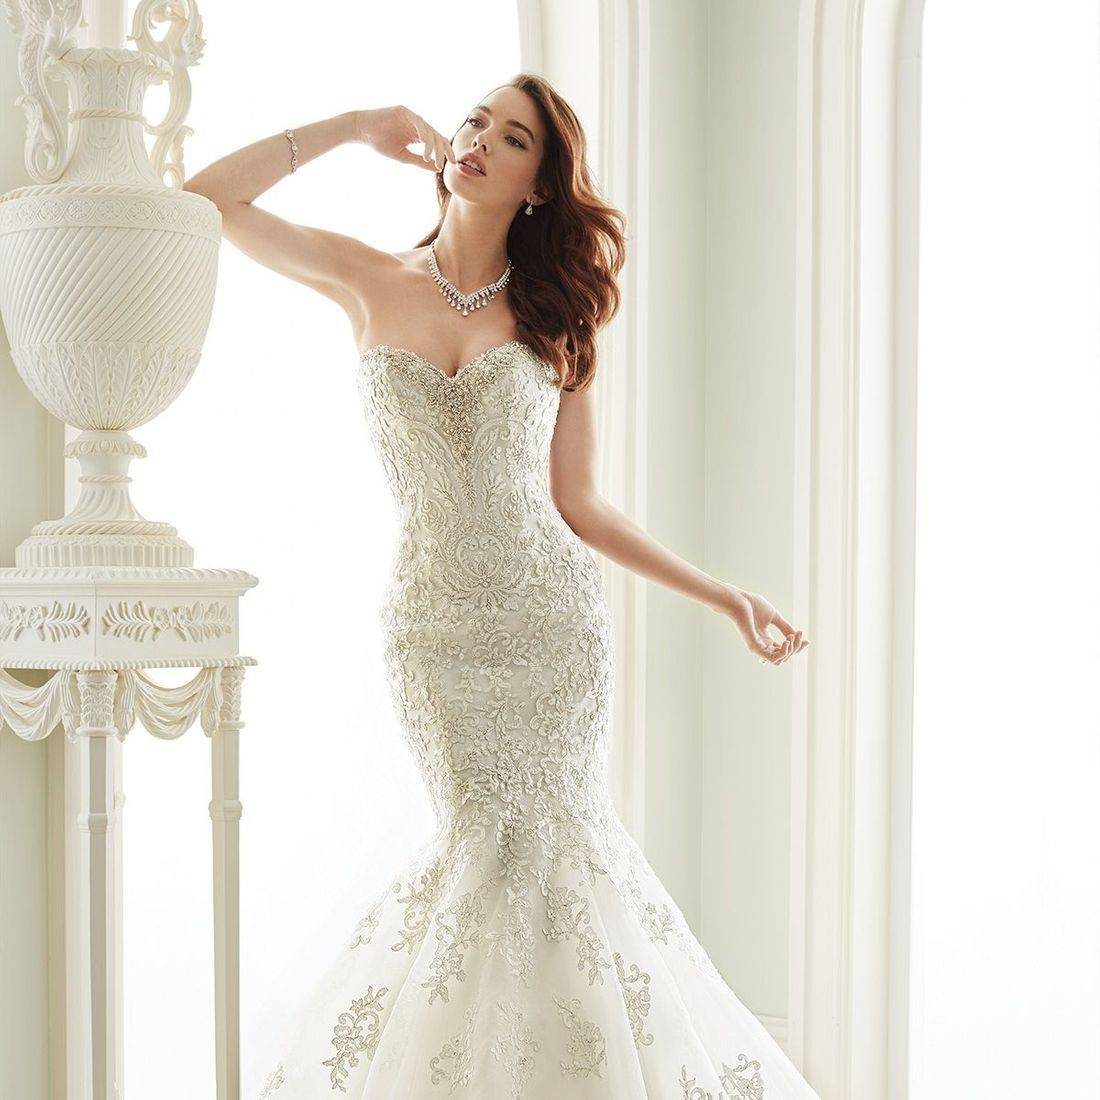 sophia tolli, sophia tolli wedding dress, organza wedding dress, fitted wedding dress, strapless wedding dress, elongated bodice wedding dress, sparkly wedding dress, ruffled wedding dress, sweetheart neckline wedding dress,